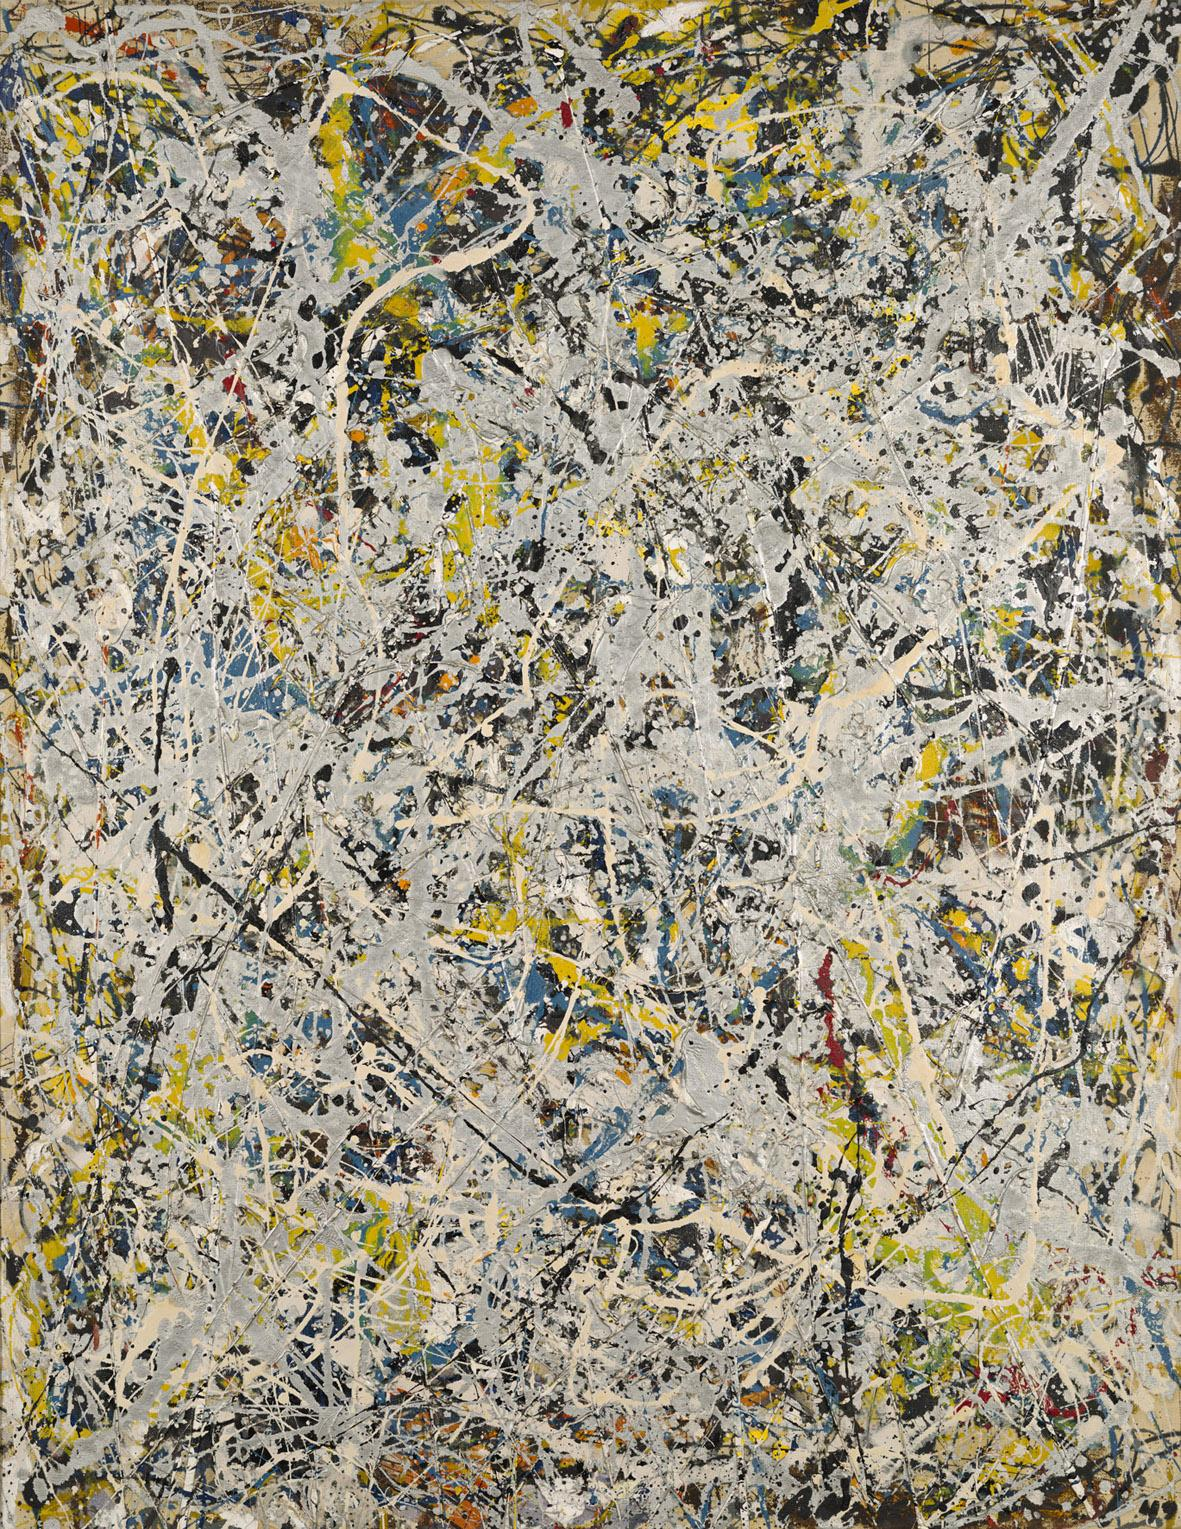 Jackson Pollock - Number 9 - 1949 - olio su tela - Hartford, Wadsworth Atheneum Museum of Art